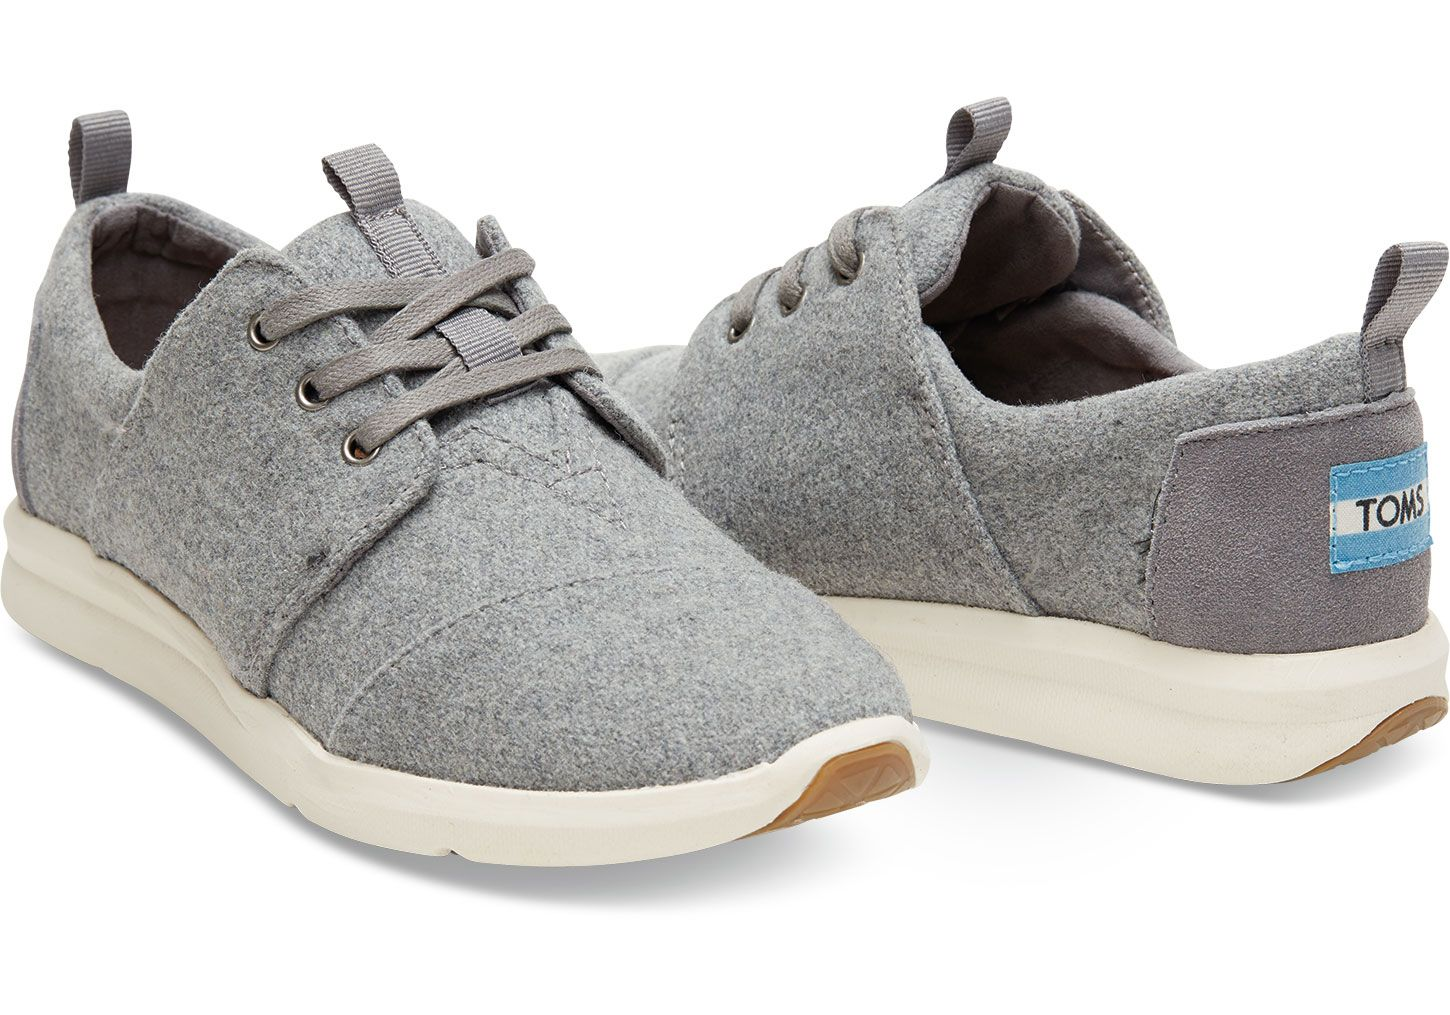 53696f7165e Good pair of walking shoes that goes with my cute clothes    — size 8     Grey Felt Suede Women s Del Rey Sneakers